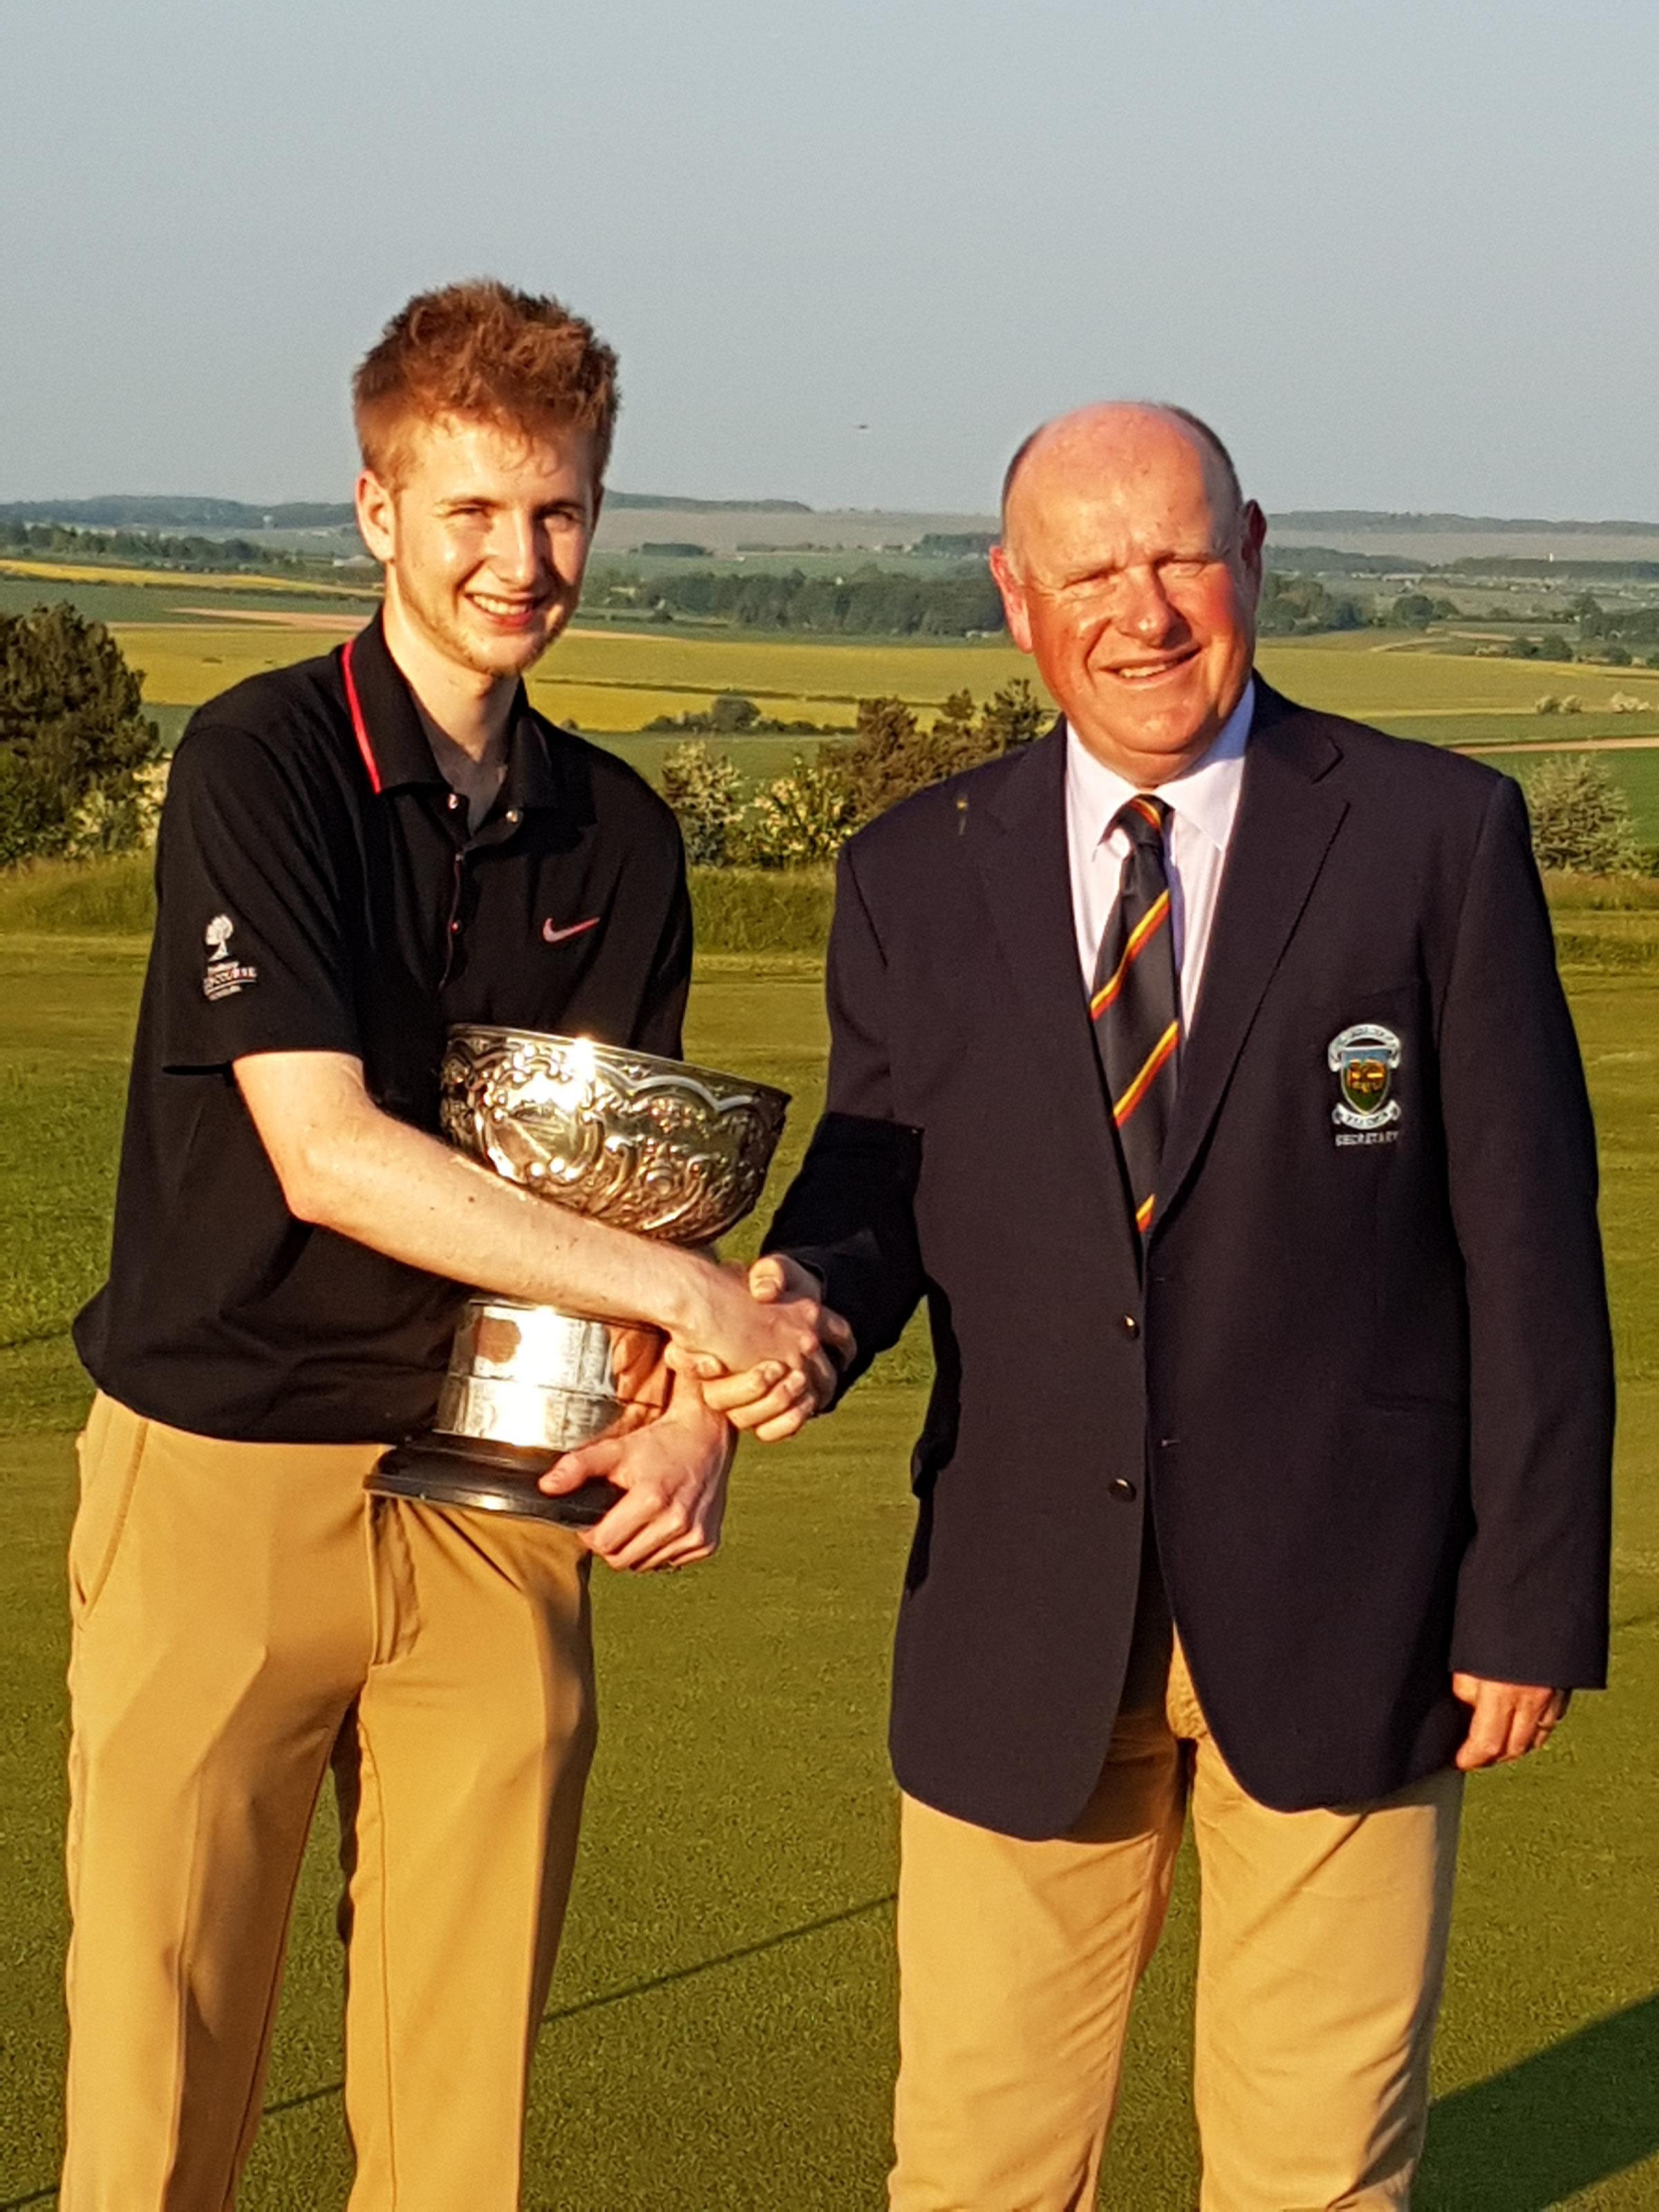 2018 Wiltshire county champion Tom Law (Broome Manor) with the trophy and county secretary Scott Talbert